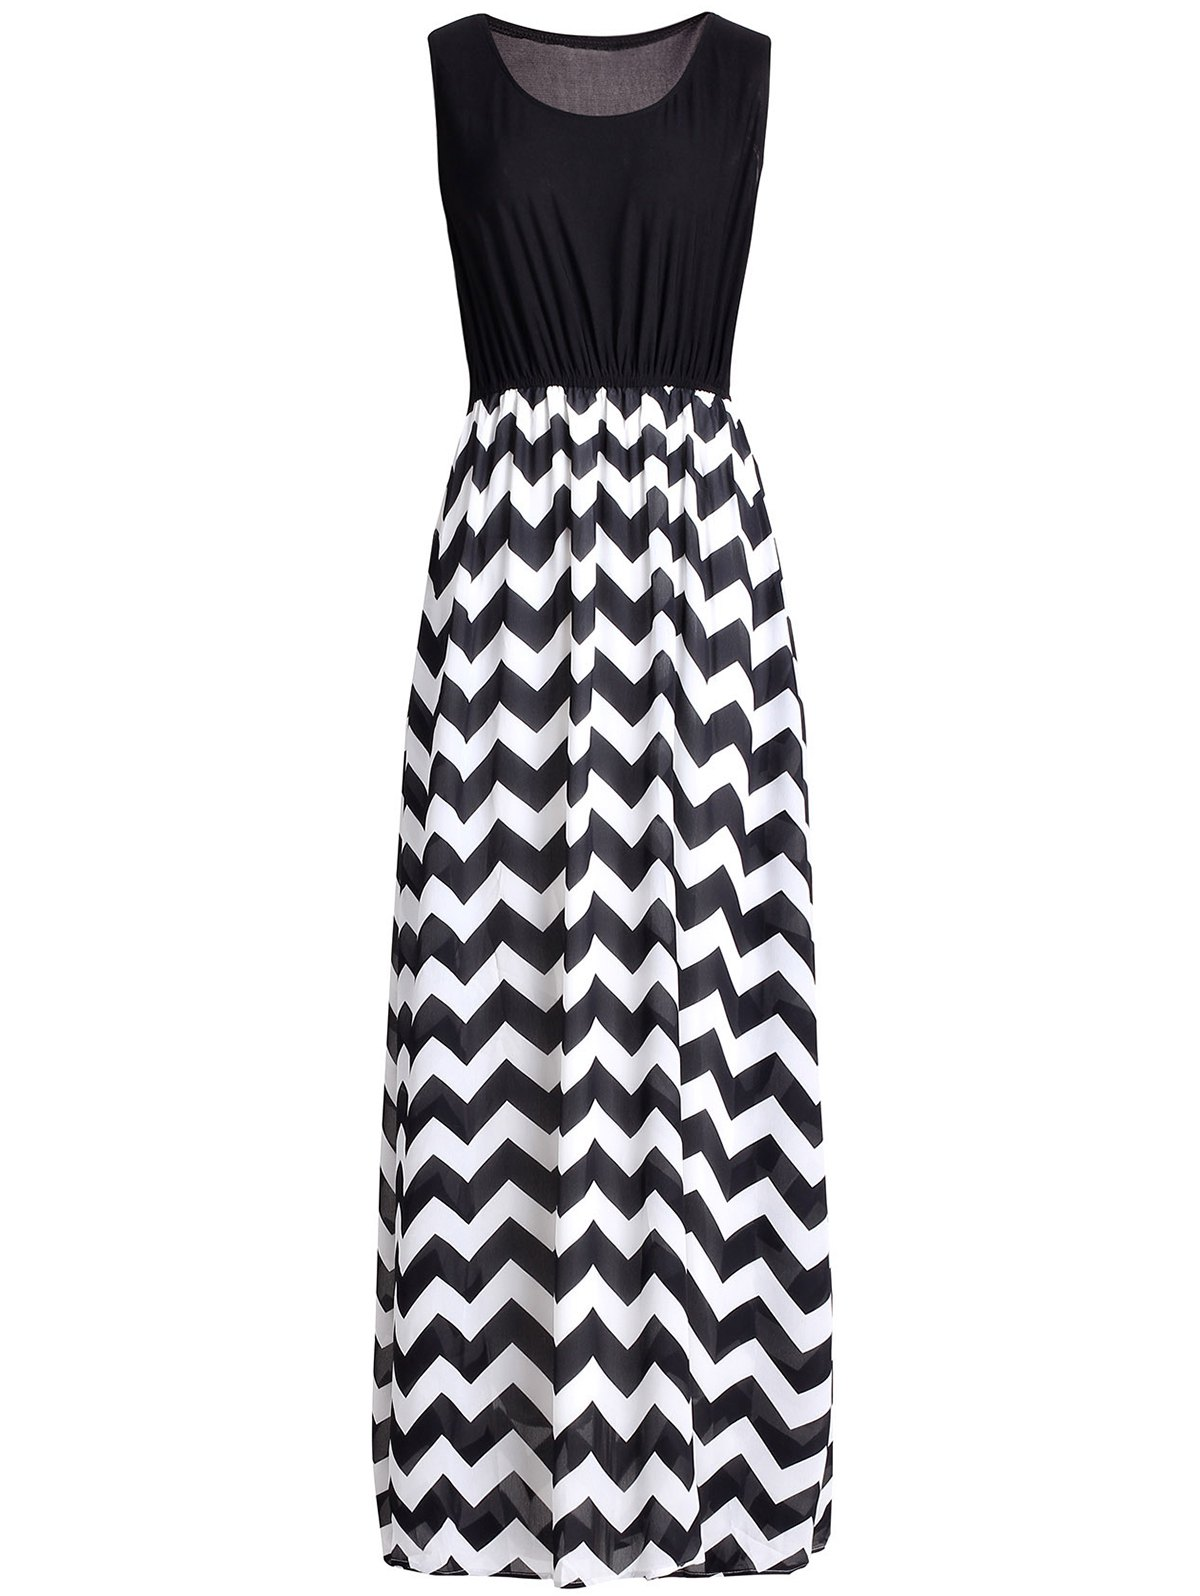 Simple Zigzag U-Neck Sleeveless Dress For Women - BLACK 4XL